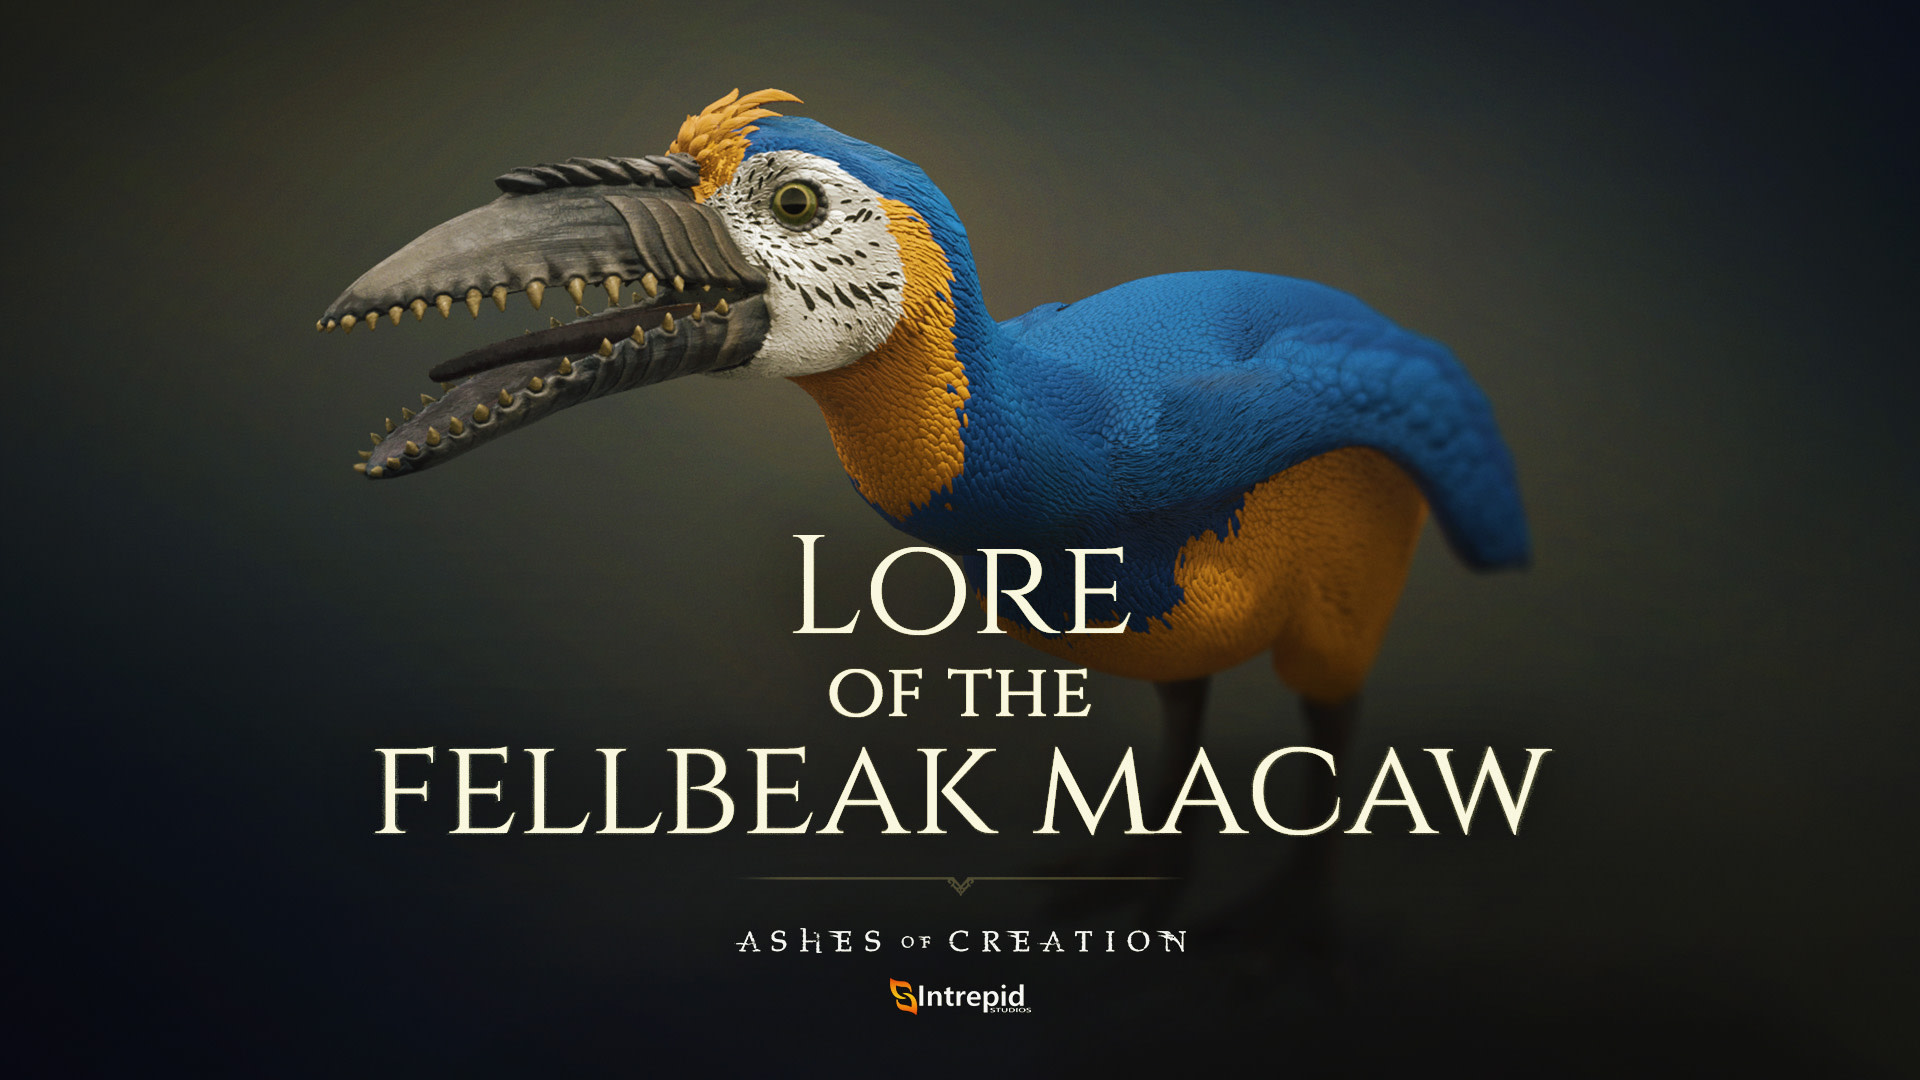 Lore_of_the_Fellbeak_Macaw_-_Social_Media_Post_Asset.jpg?h=1920